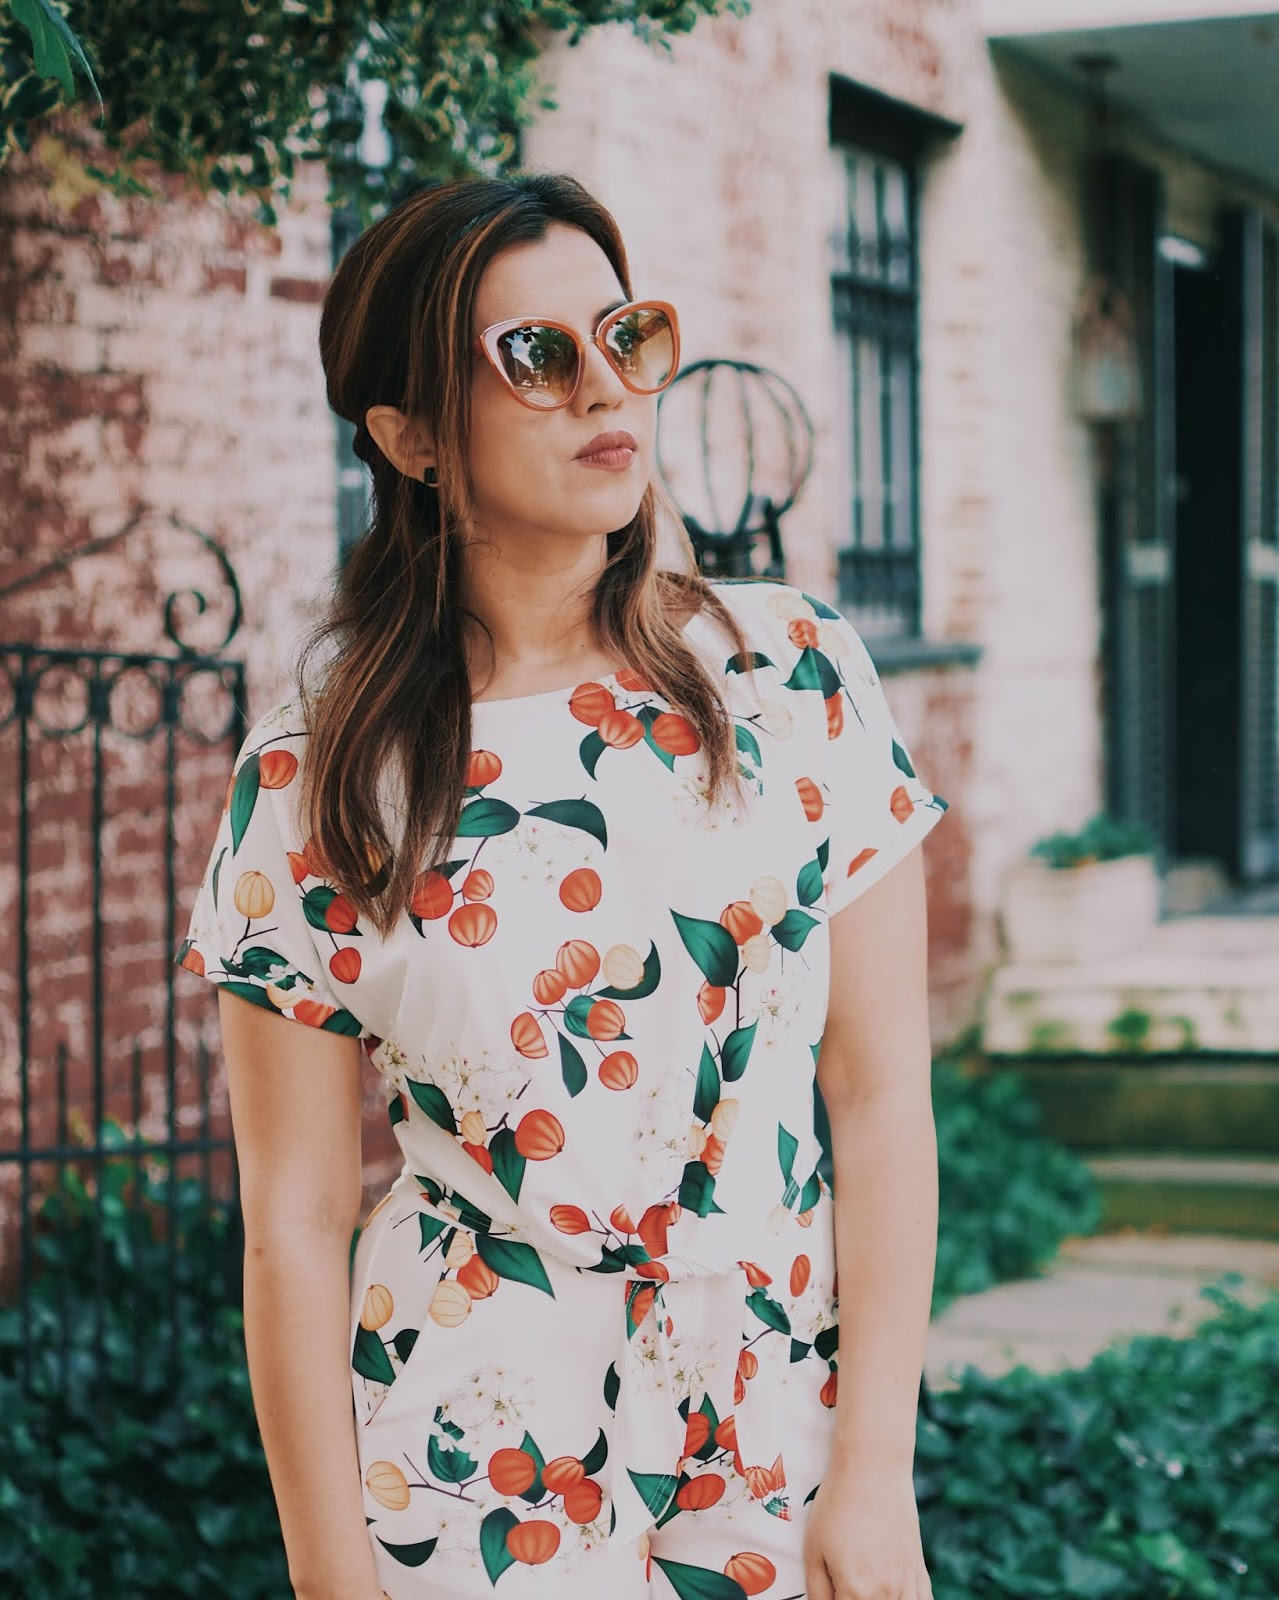 Botanical Print - mariestilo-shein-lookoftheday-dcblogger-travelblogger-blog de viajes-travel-itgirl-fashionista-moda-tendencias-influencer-fashion-